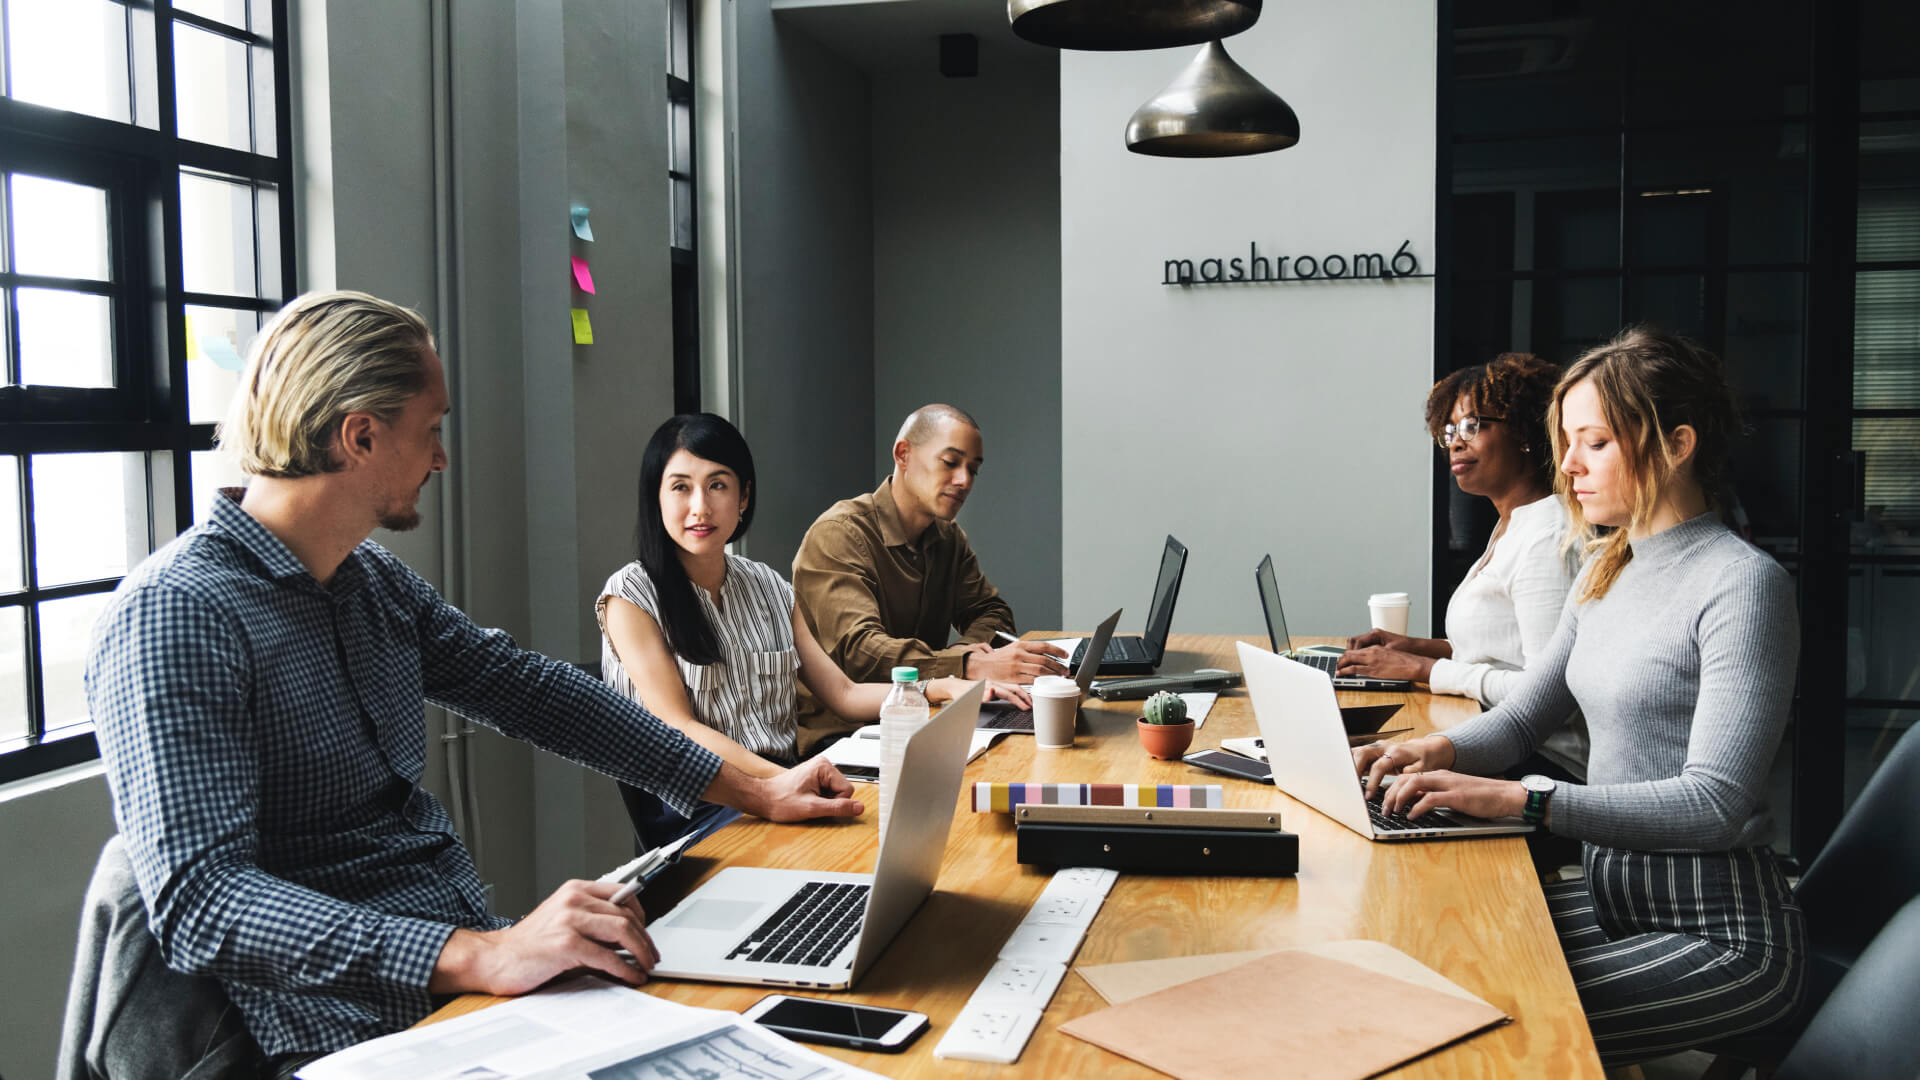 team on computers during sales training program